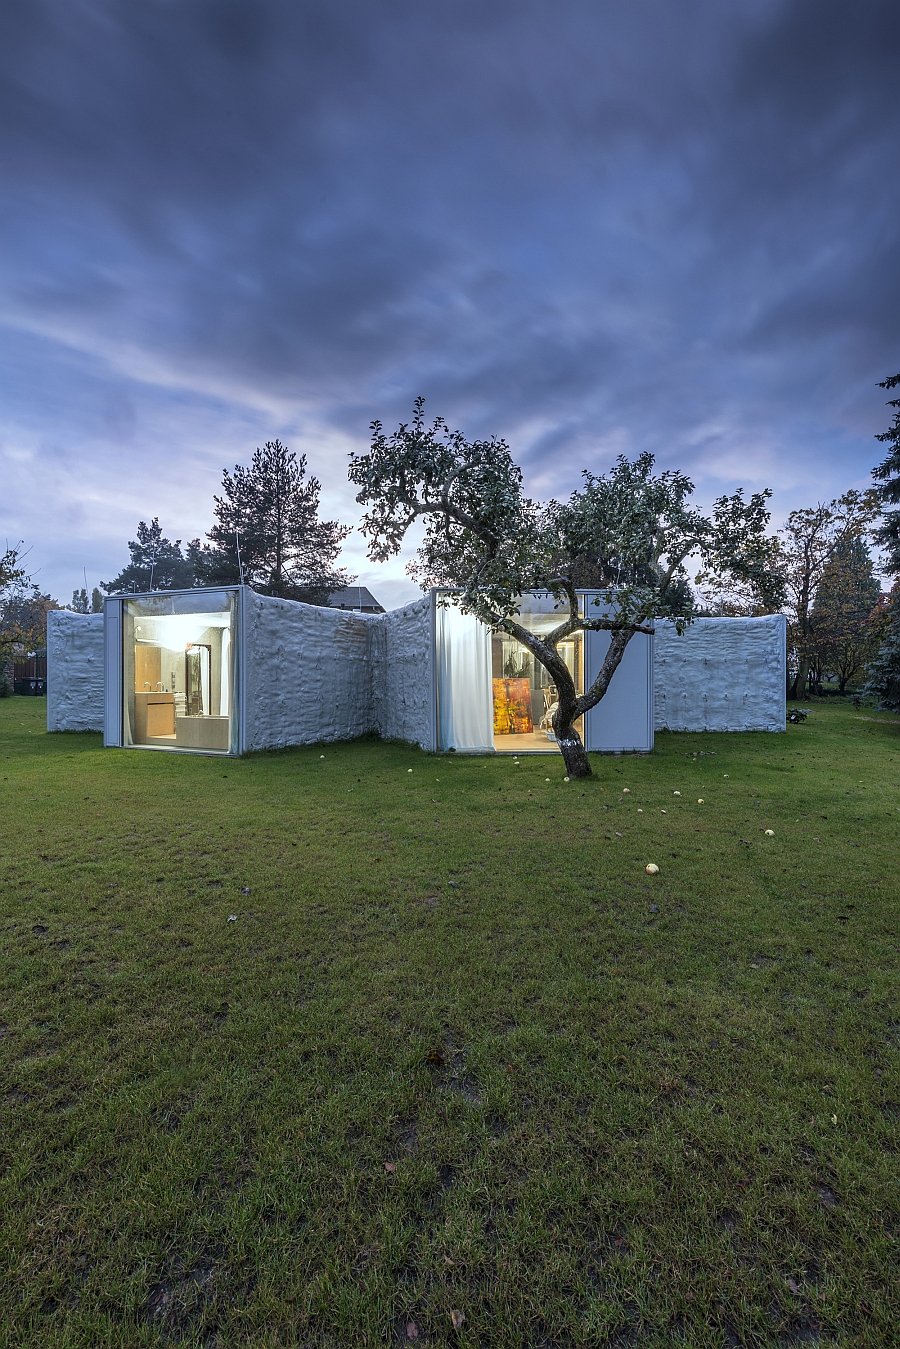 Gorgeous Chameleon House responds to the conditions of the landscape